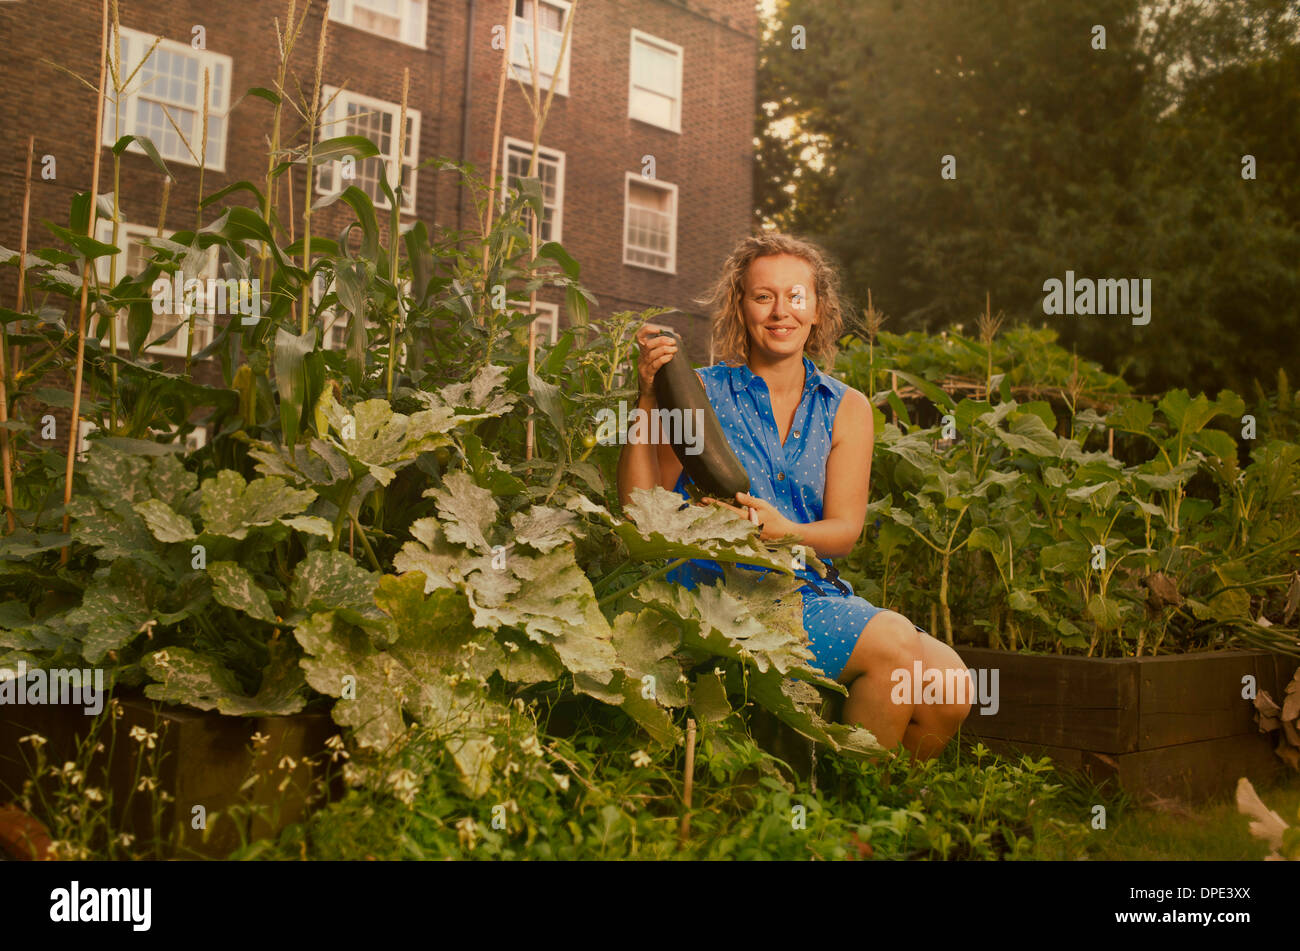 Young woman harvesting marrows on council estate allotment - Stock Image